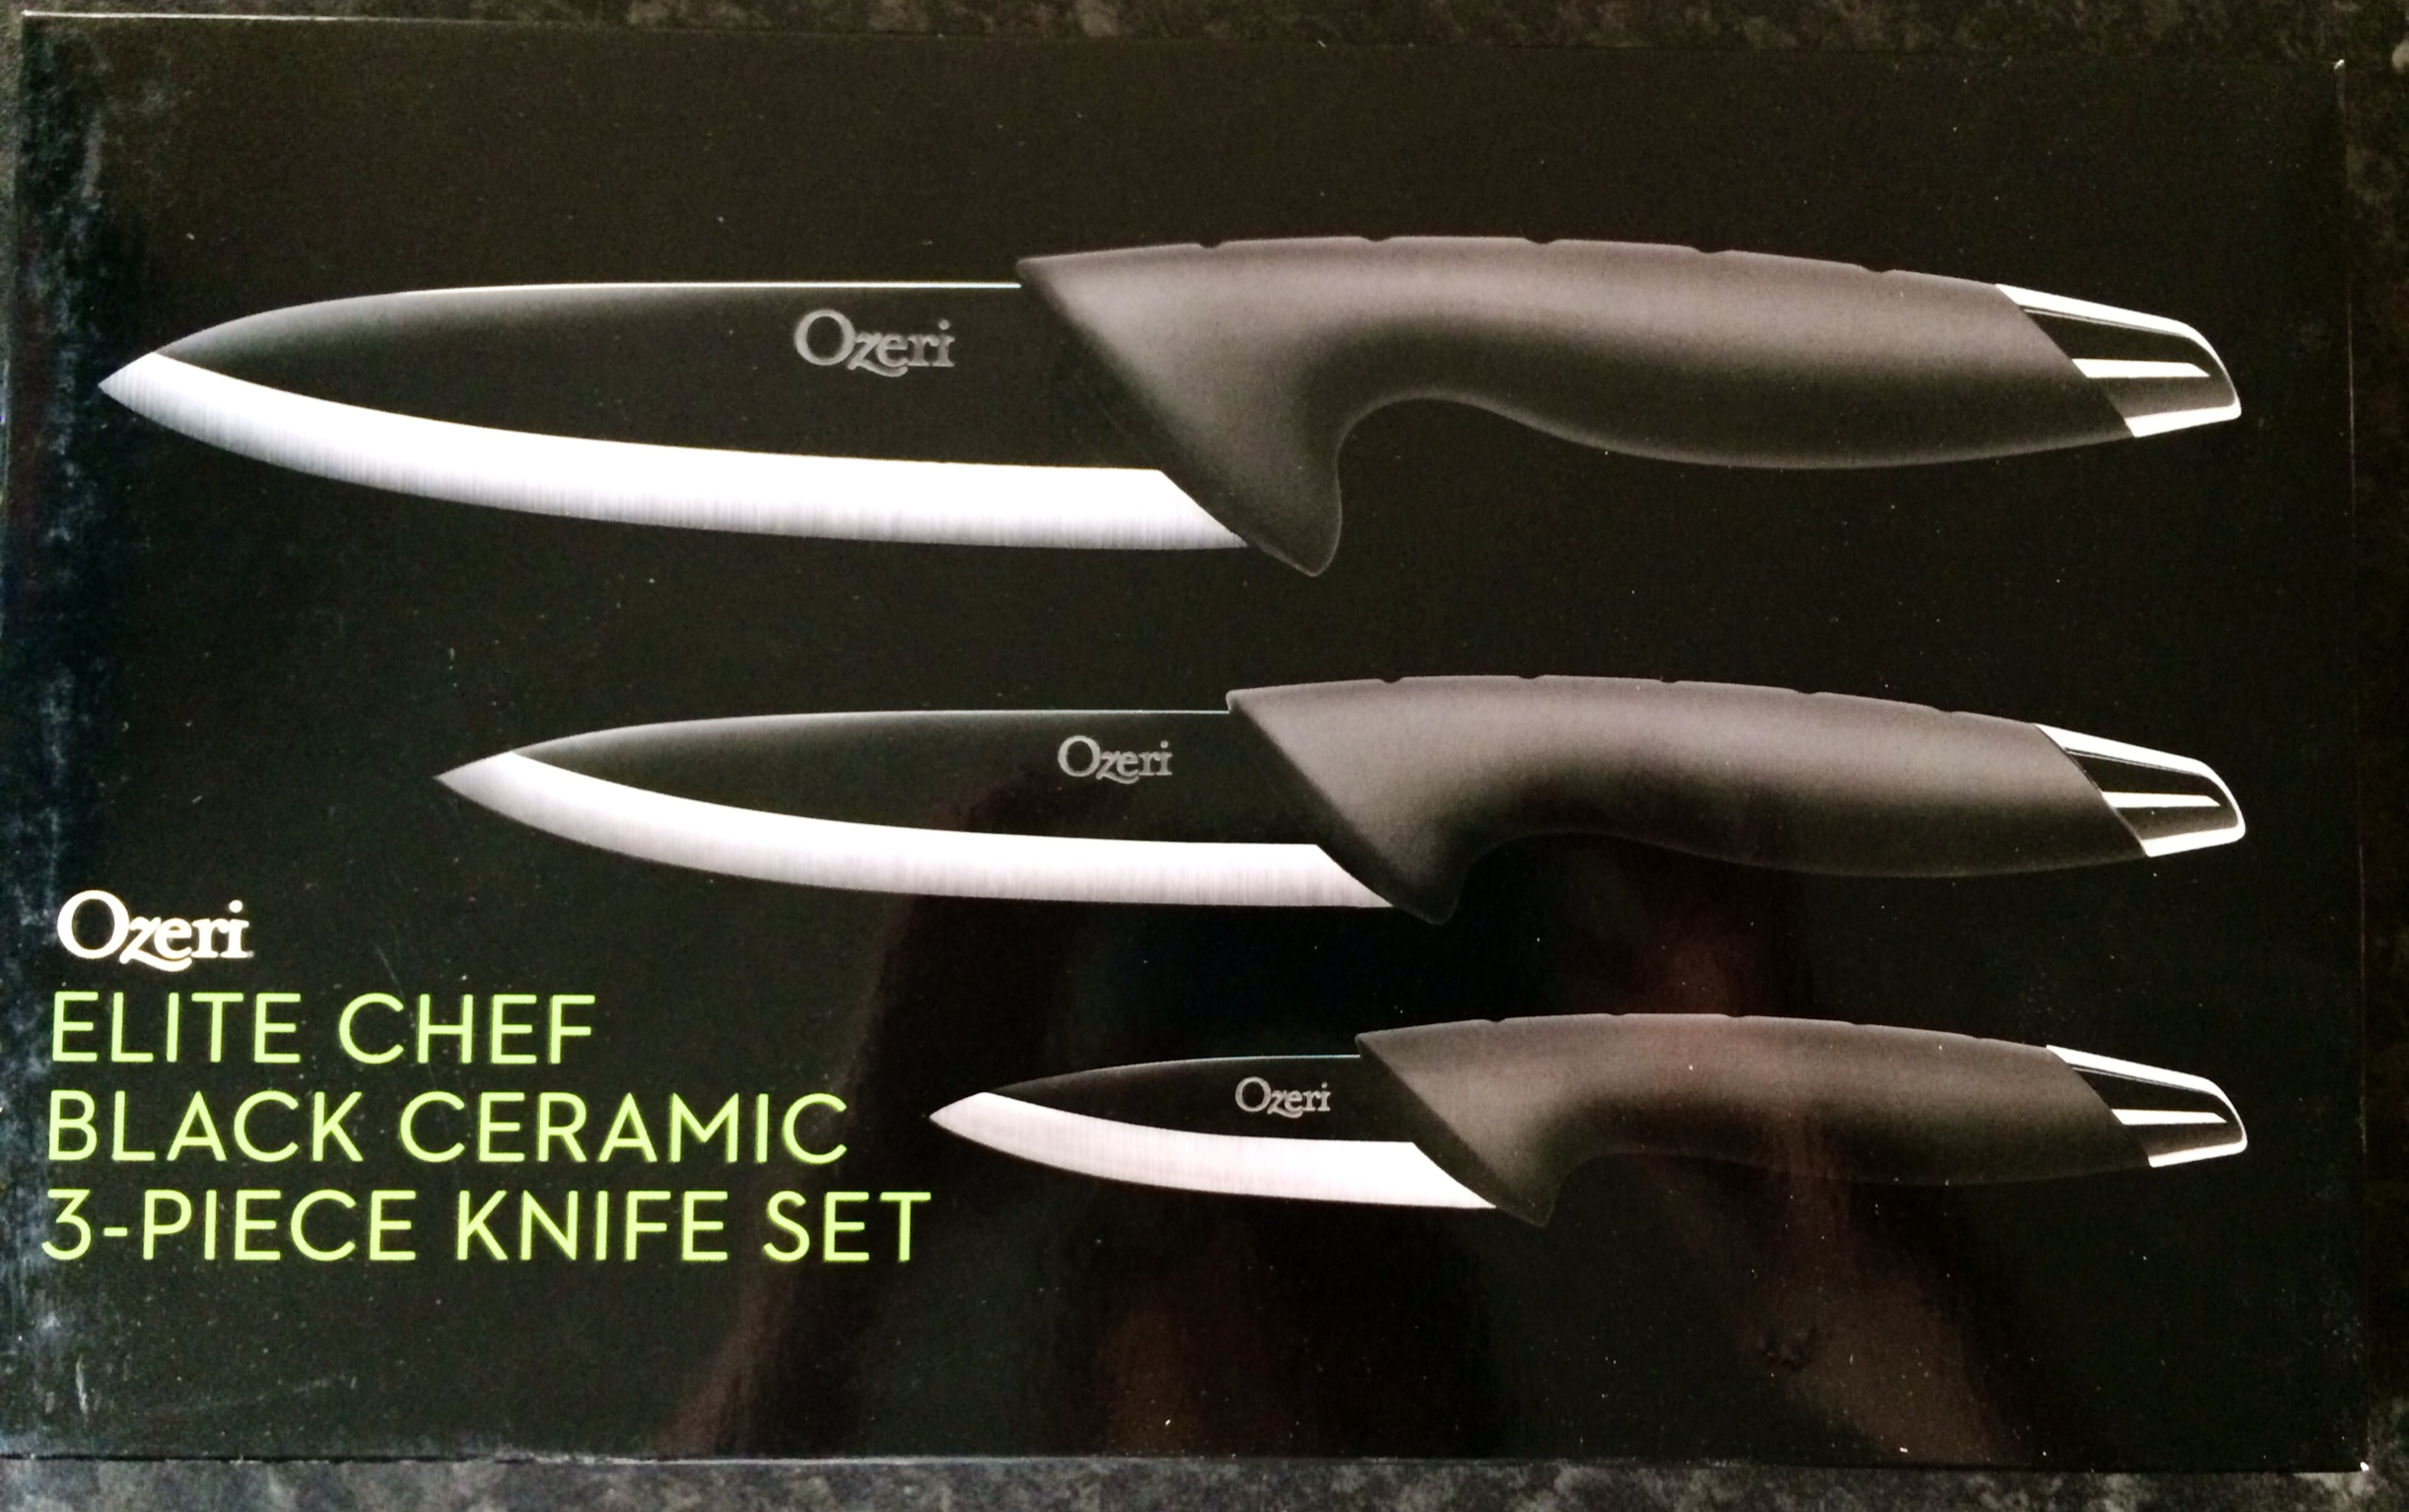 I Was Really Pleased To Have The Opportunity To Review These Knives, I Am  Always Keen To Discover Good Quality Long Lasting Products For The Kitchen  And ...